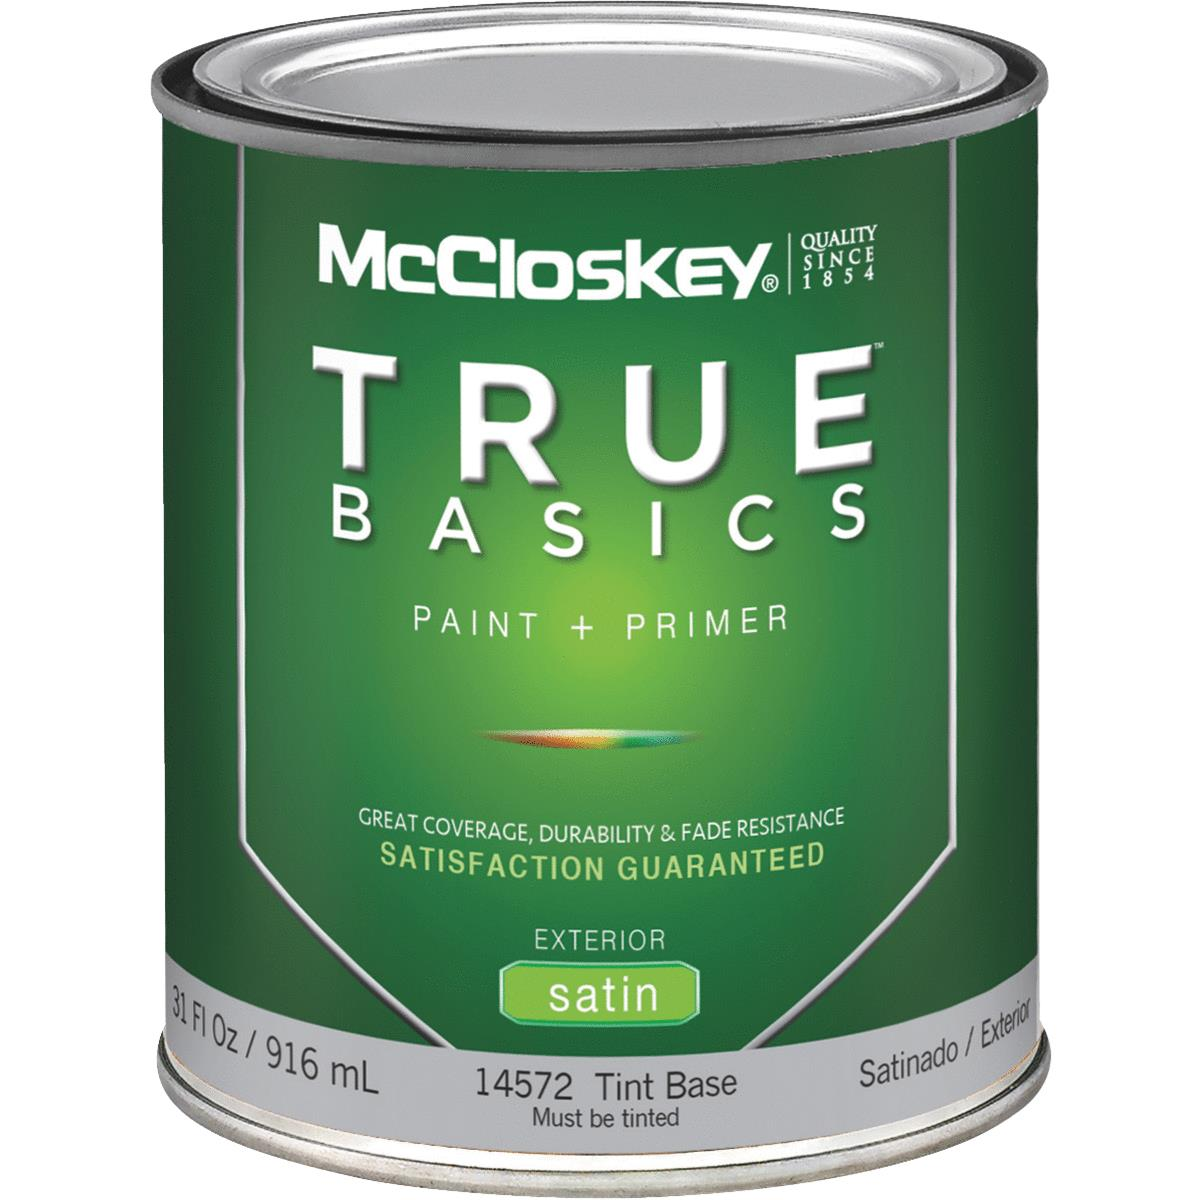 McCloskey TRUE BASICS Latex Paint & Primer Satin Exterior House Paint